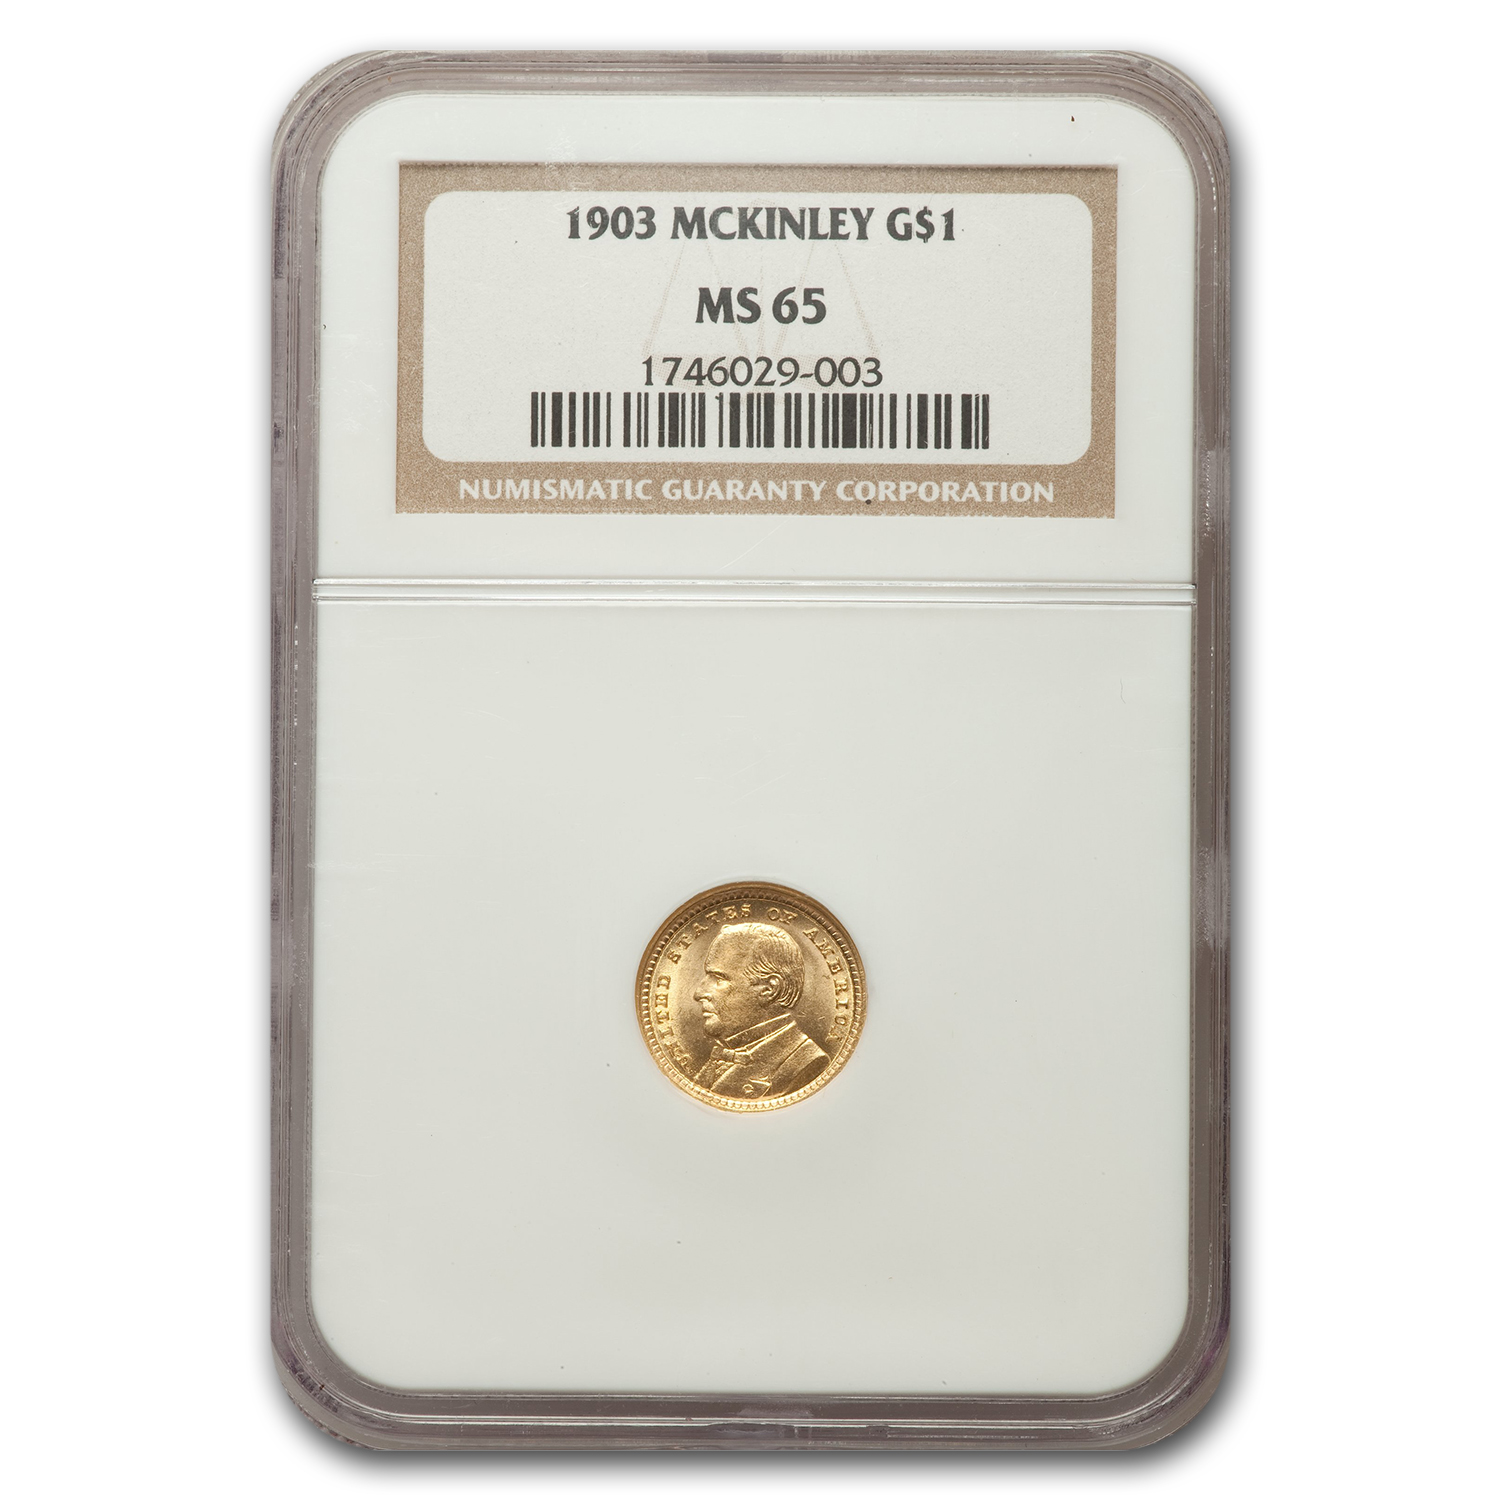 1903 $1 Commemorative Gold MS-65 NGC